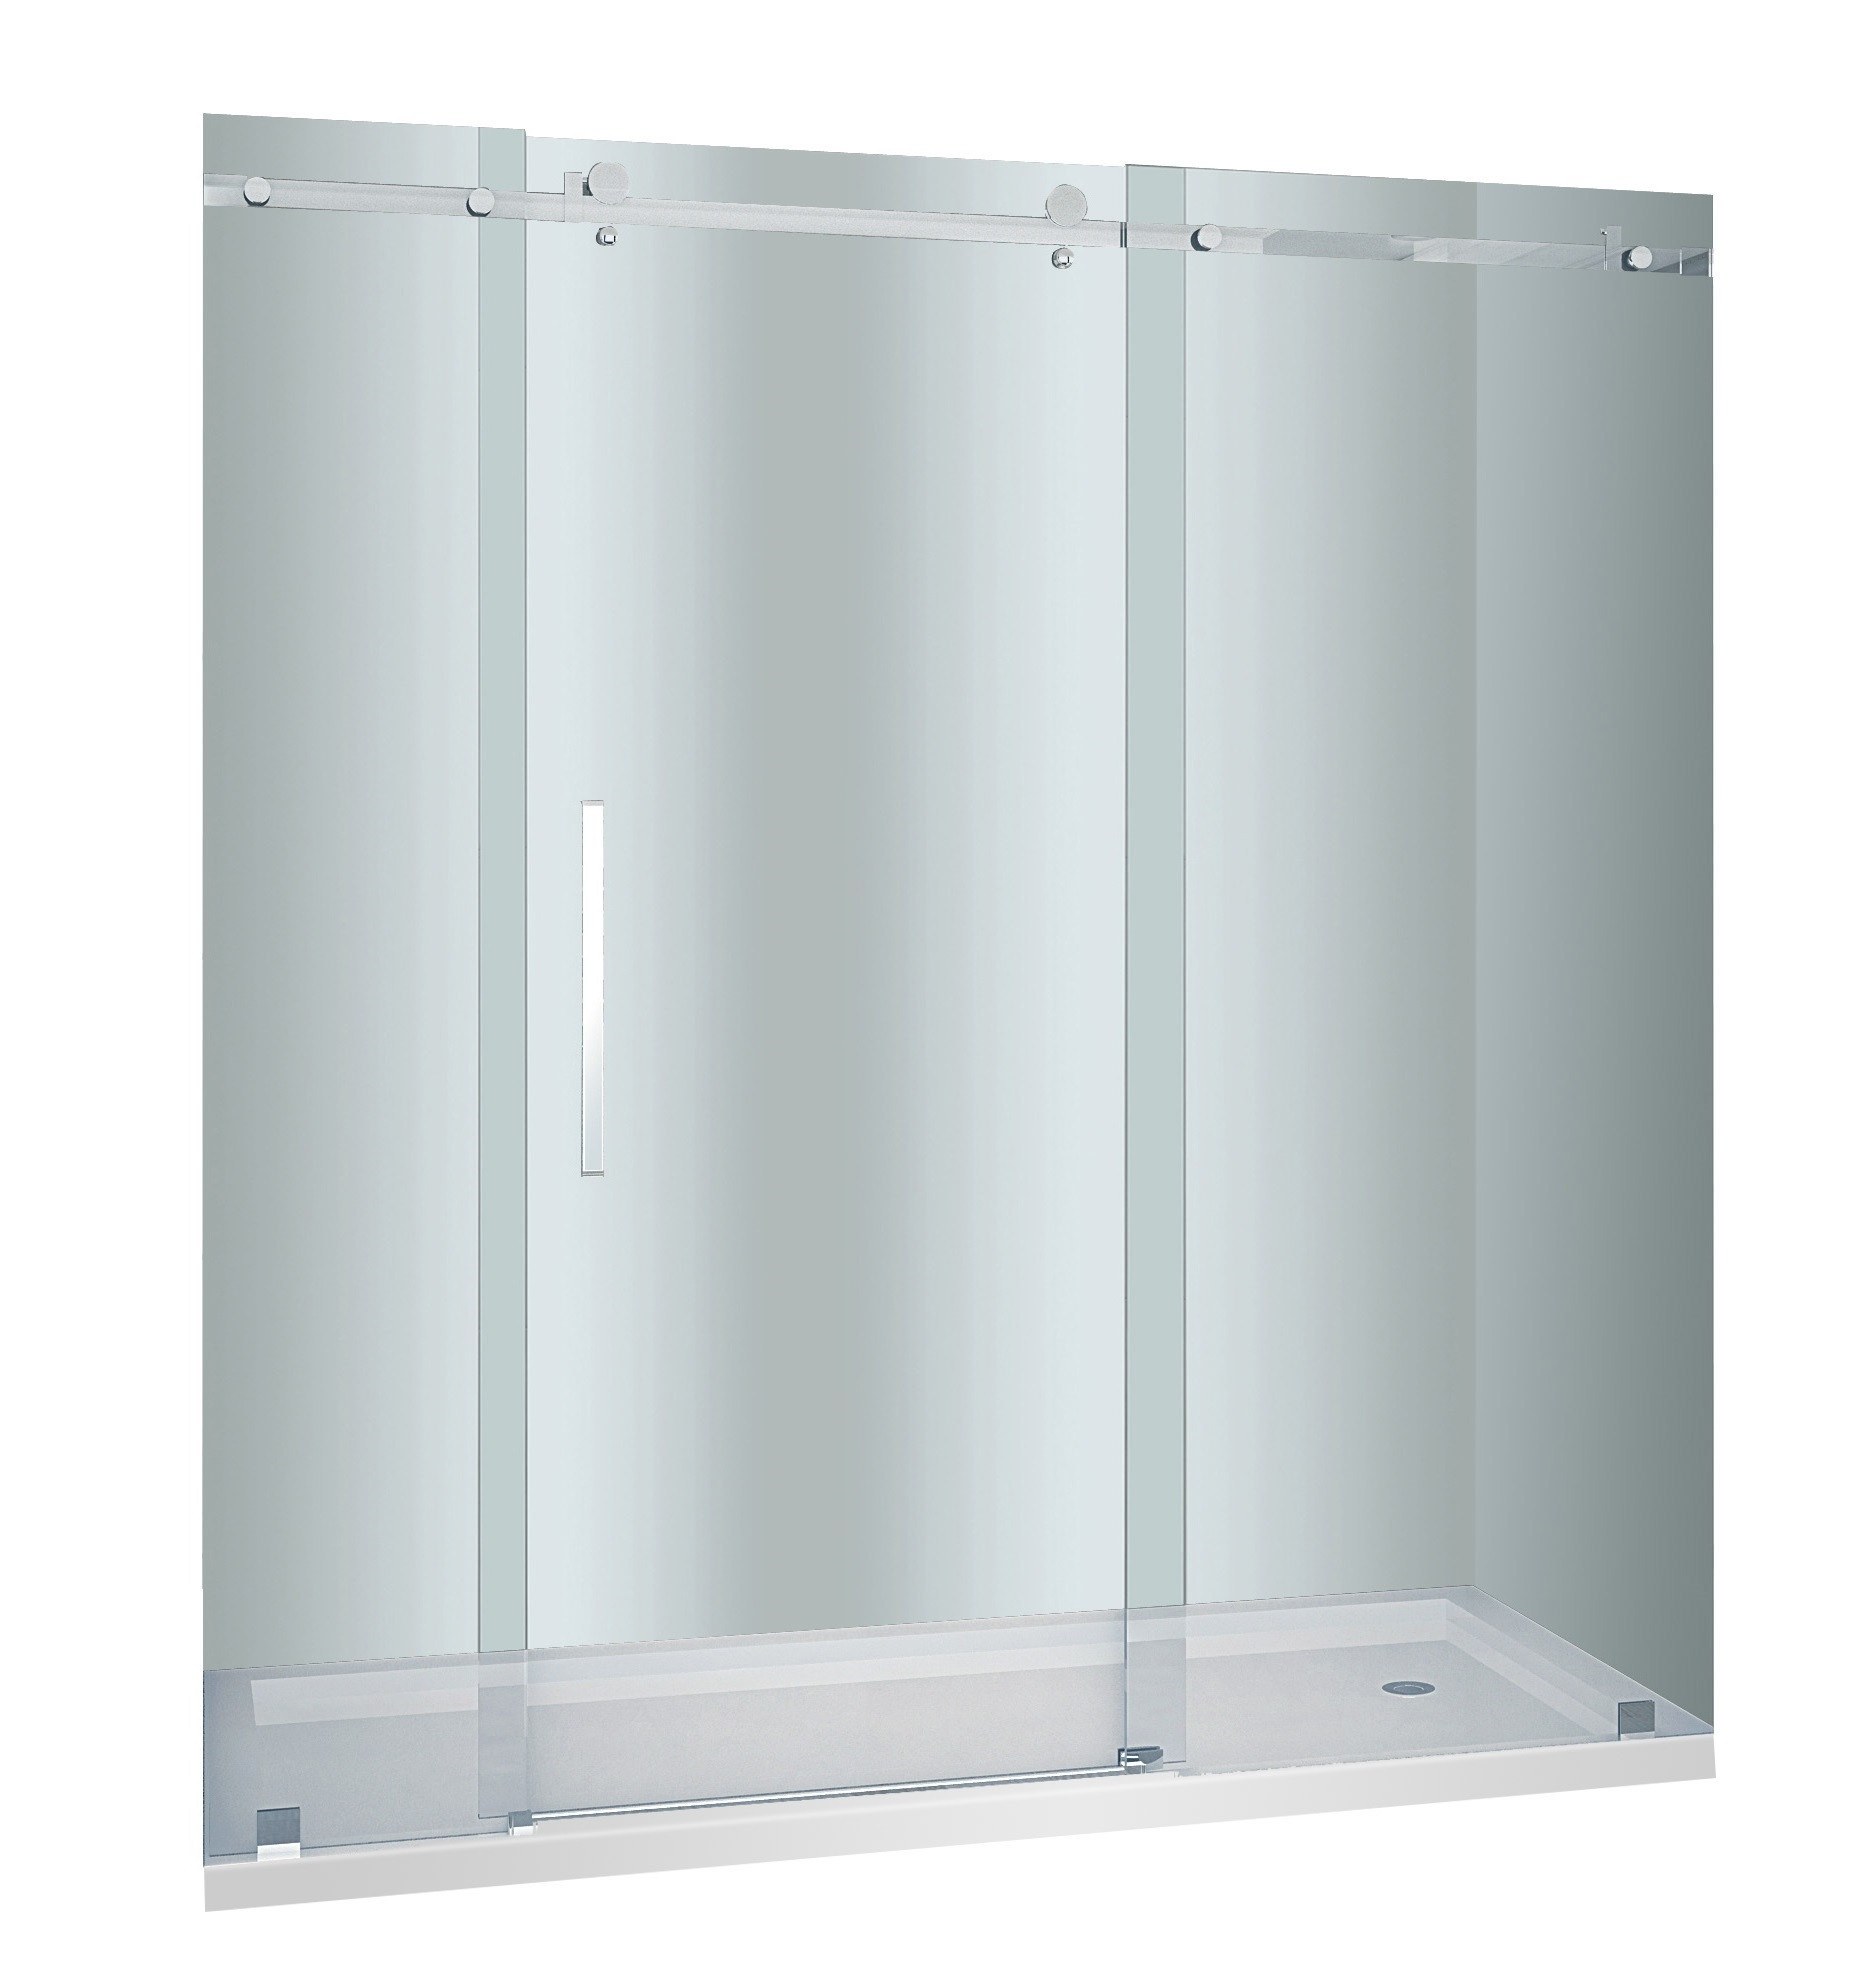 Aston Global SDR976-TR-SS-72-10-R Sliding Shower Door In Stainless Steel With Right Shower Base